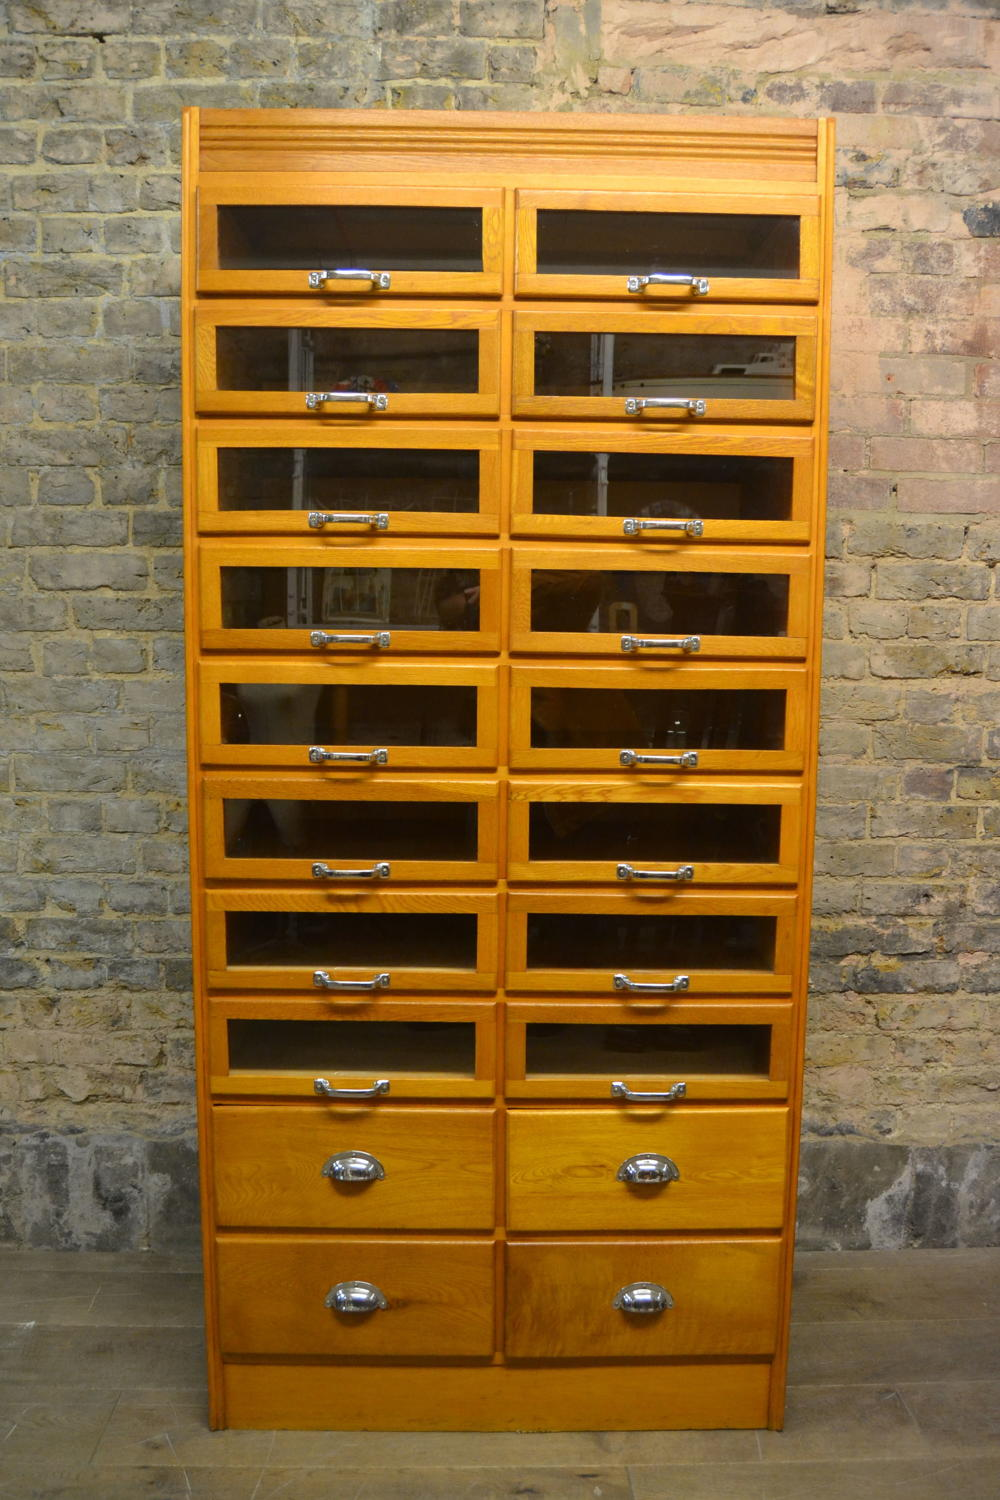 1950s Haberdashery Shop Display Cabinet